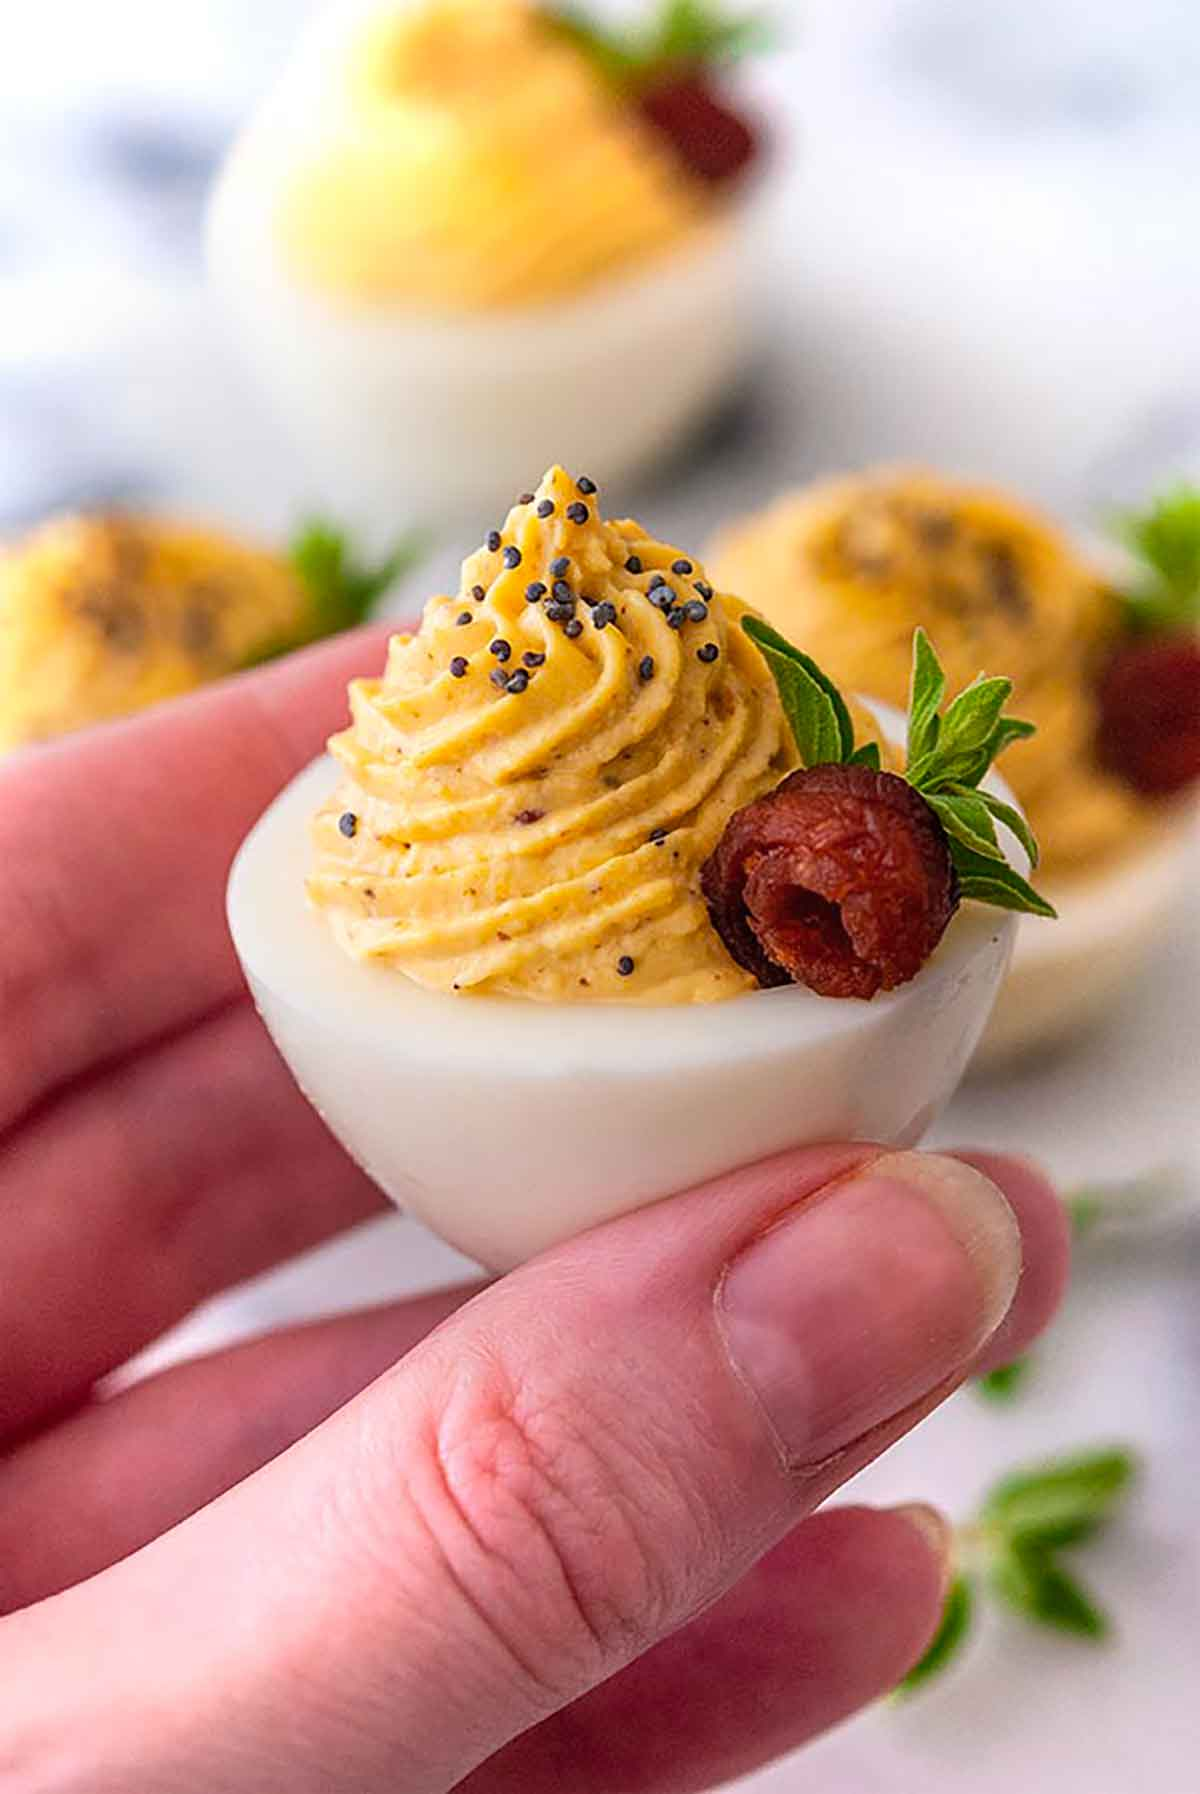 A hand holding a deviled egg, garnished with a bacon rose and oregano leaves.